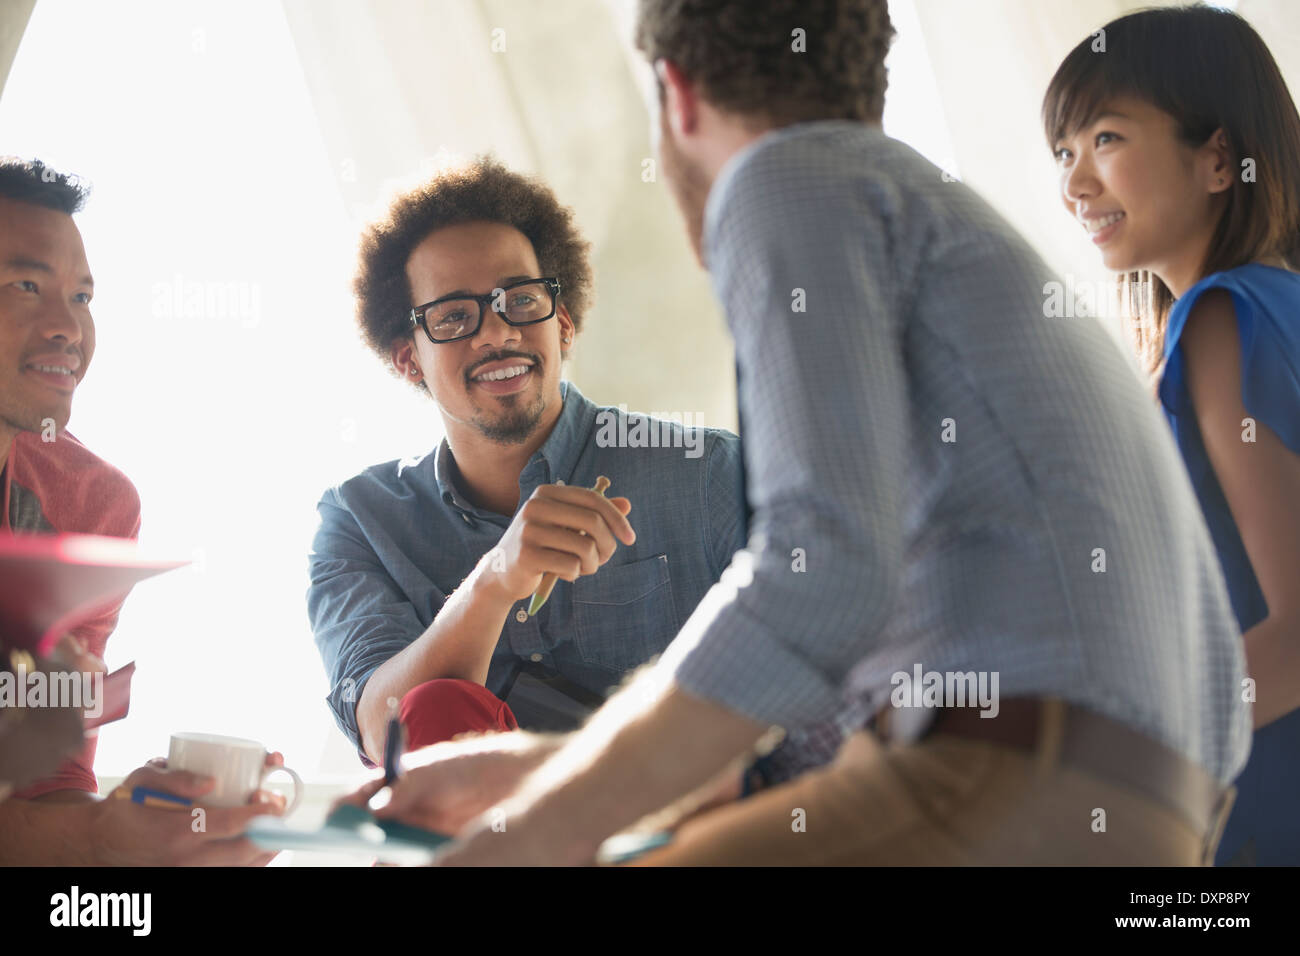 Casual business people talking in meeting - Stock Image